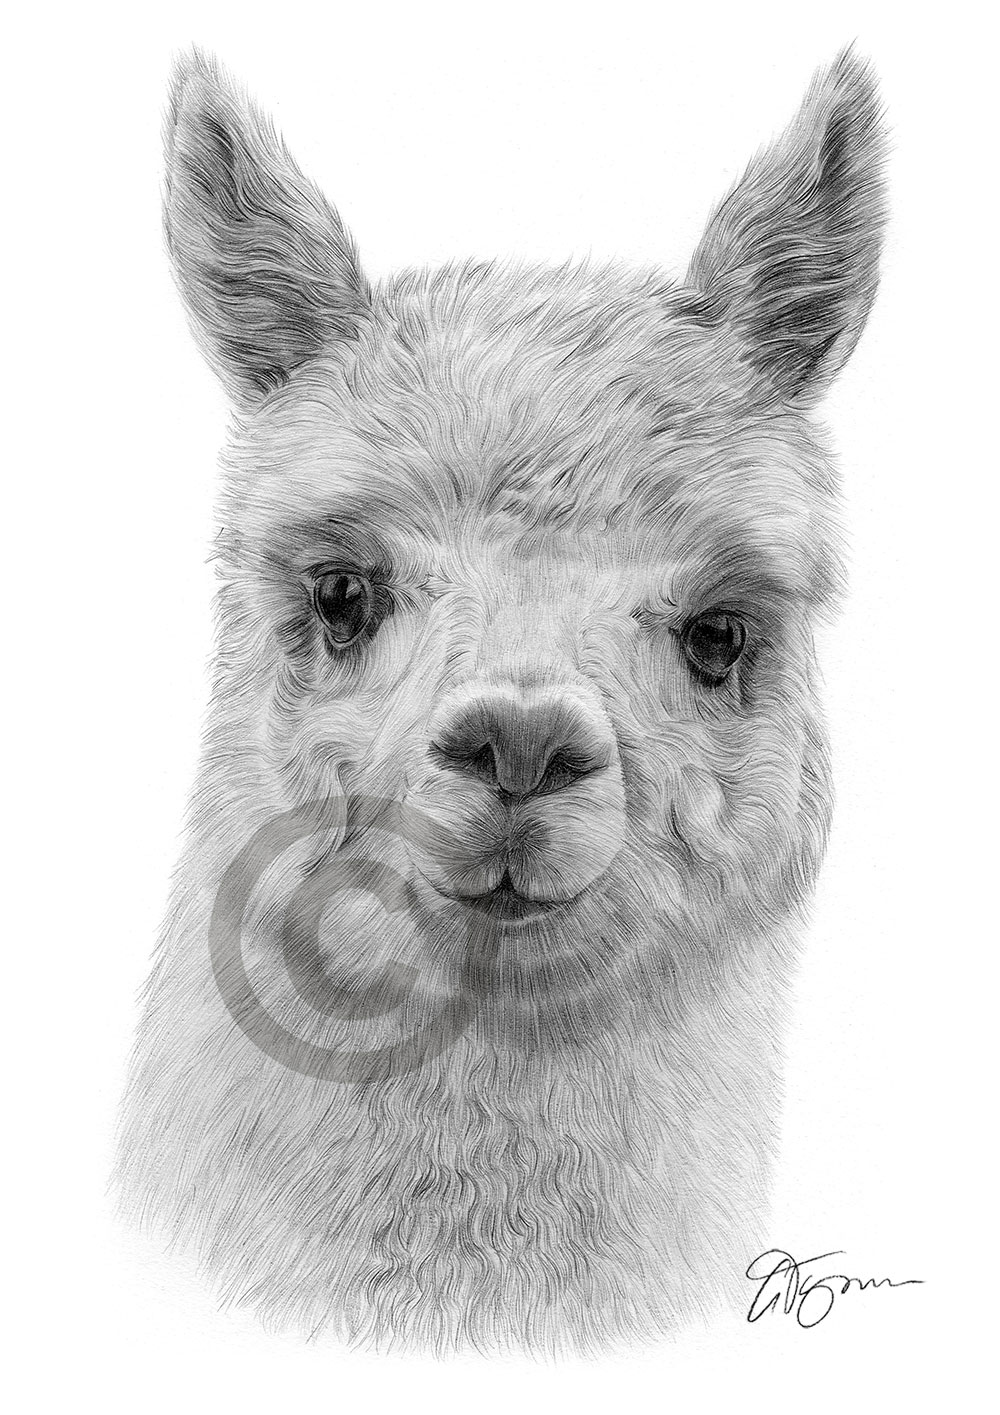 Pencil drawing of an alpaca by UK artist Gary Tymon